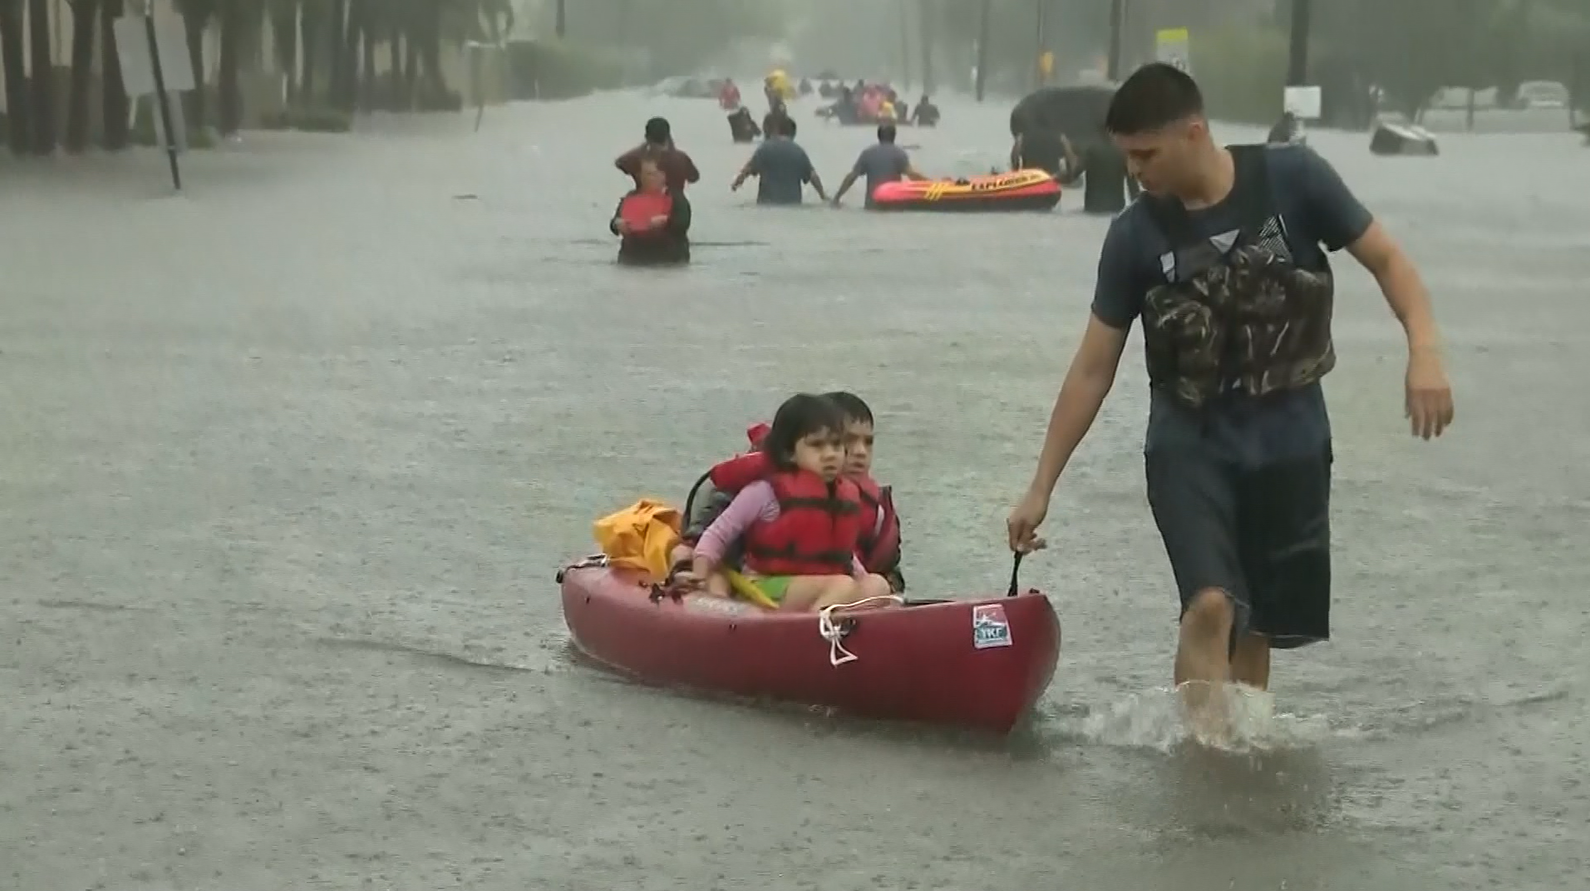 Young kids rescued in canoe  (KPRC / CNN)